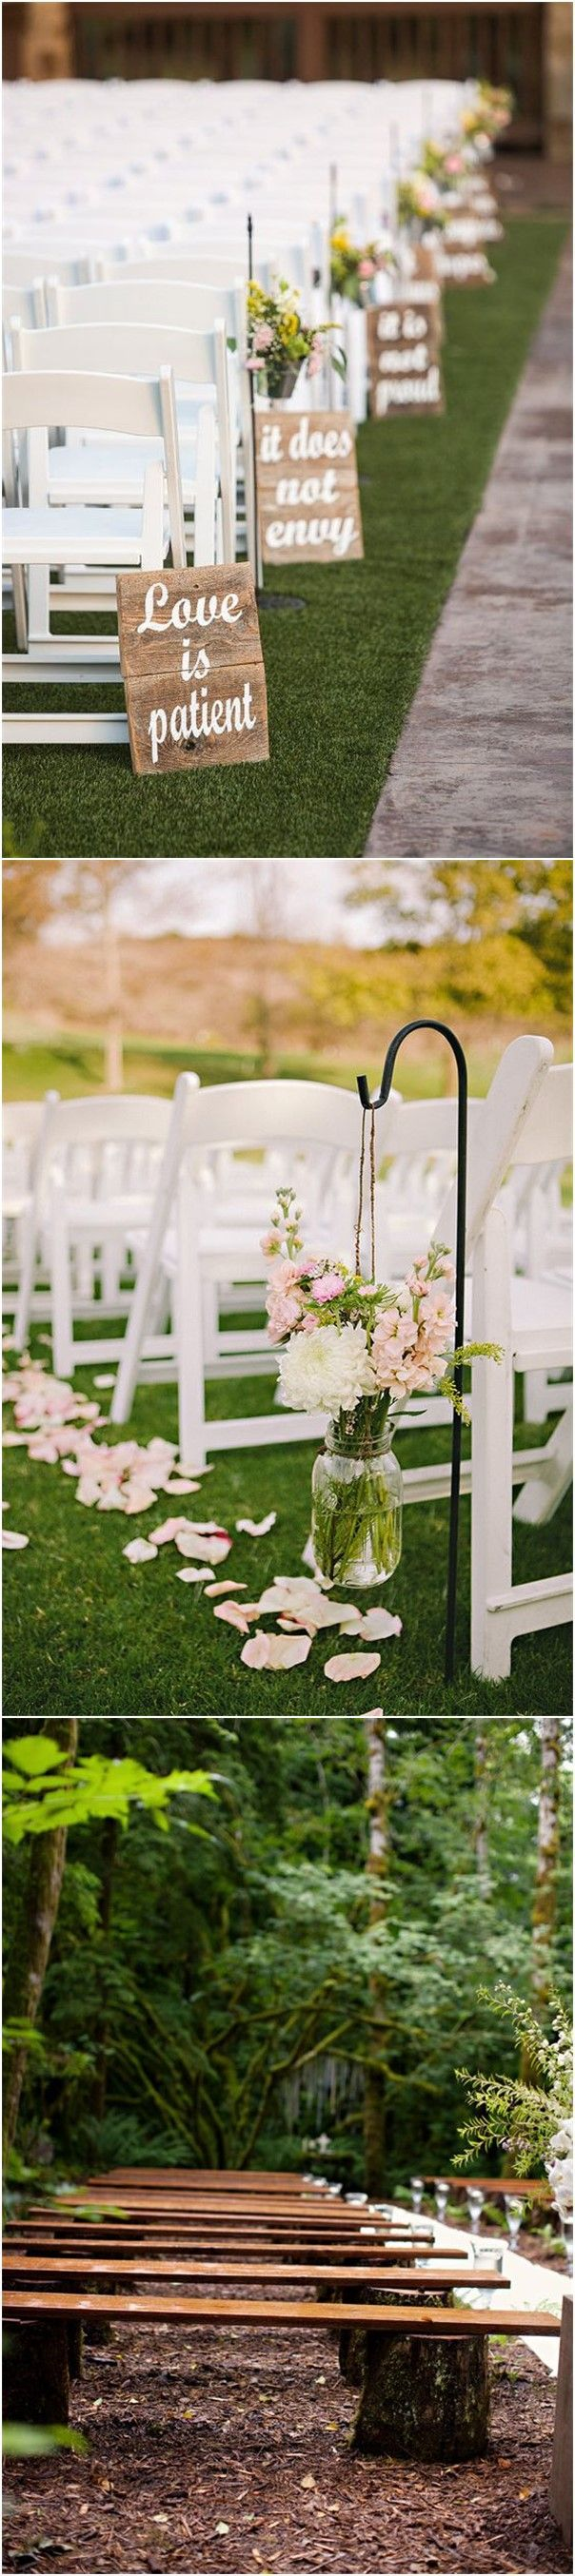 Wedding decorations country   Rustic Outdoor Wedding Ceremony Decorations Ideas  Rustic